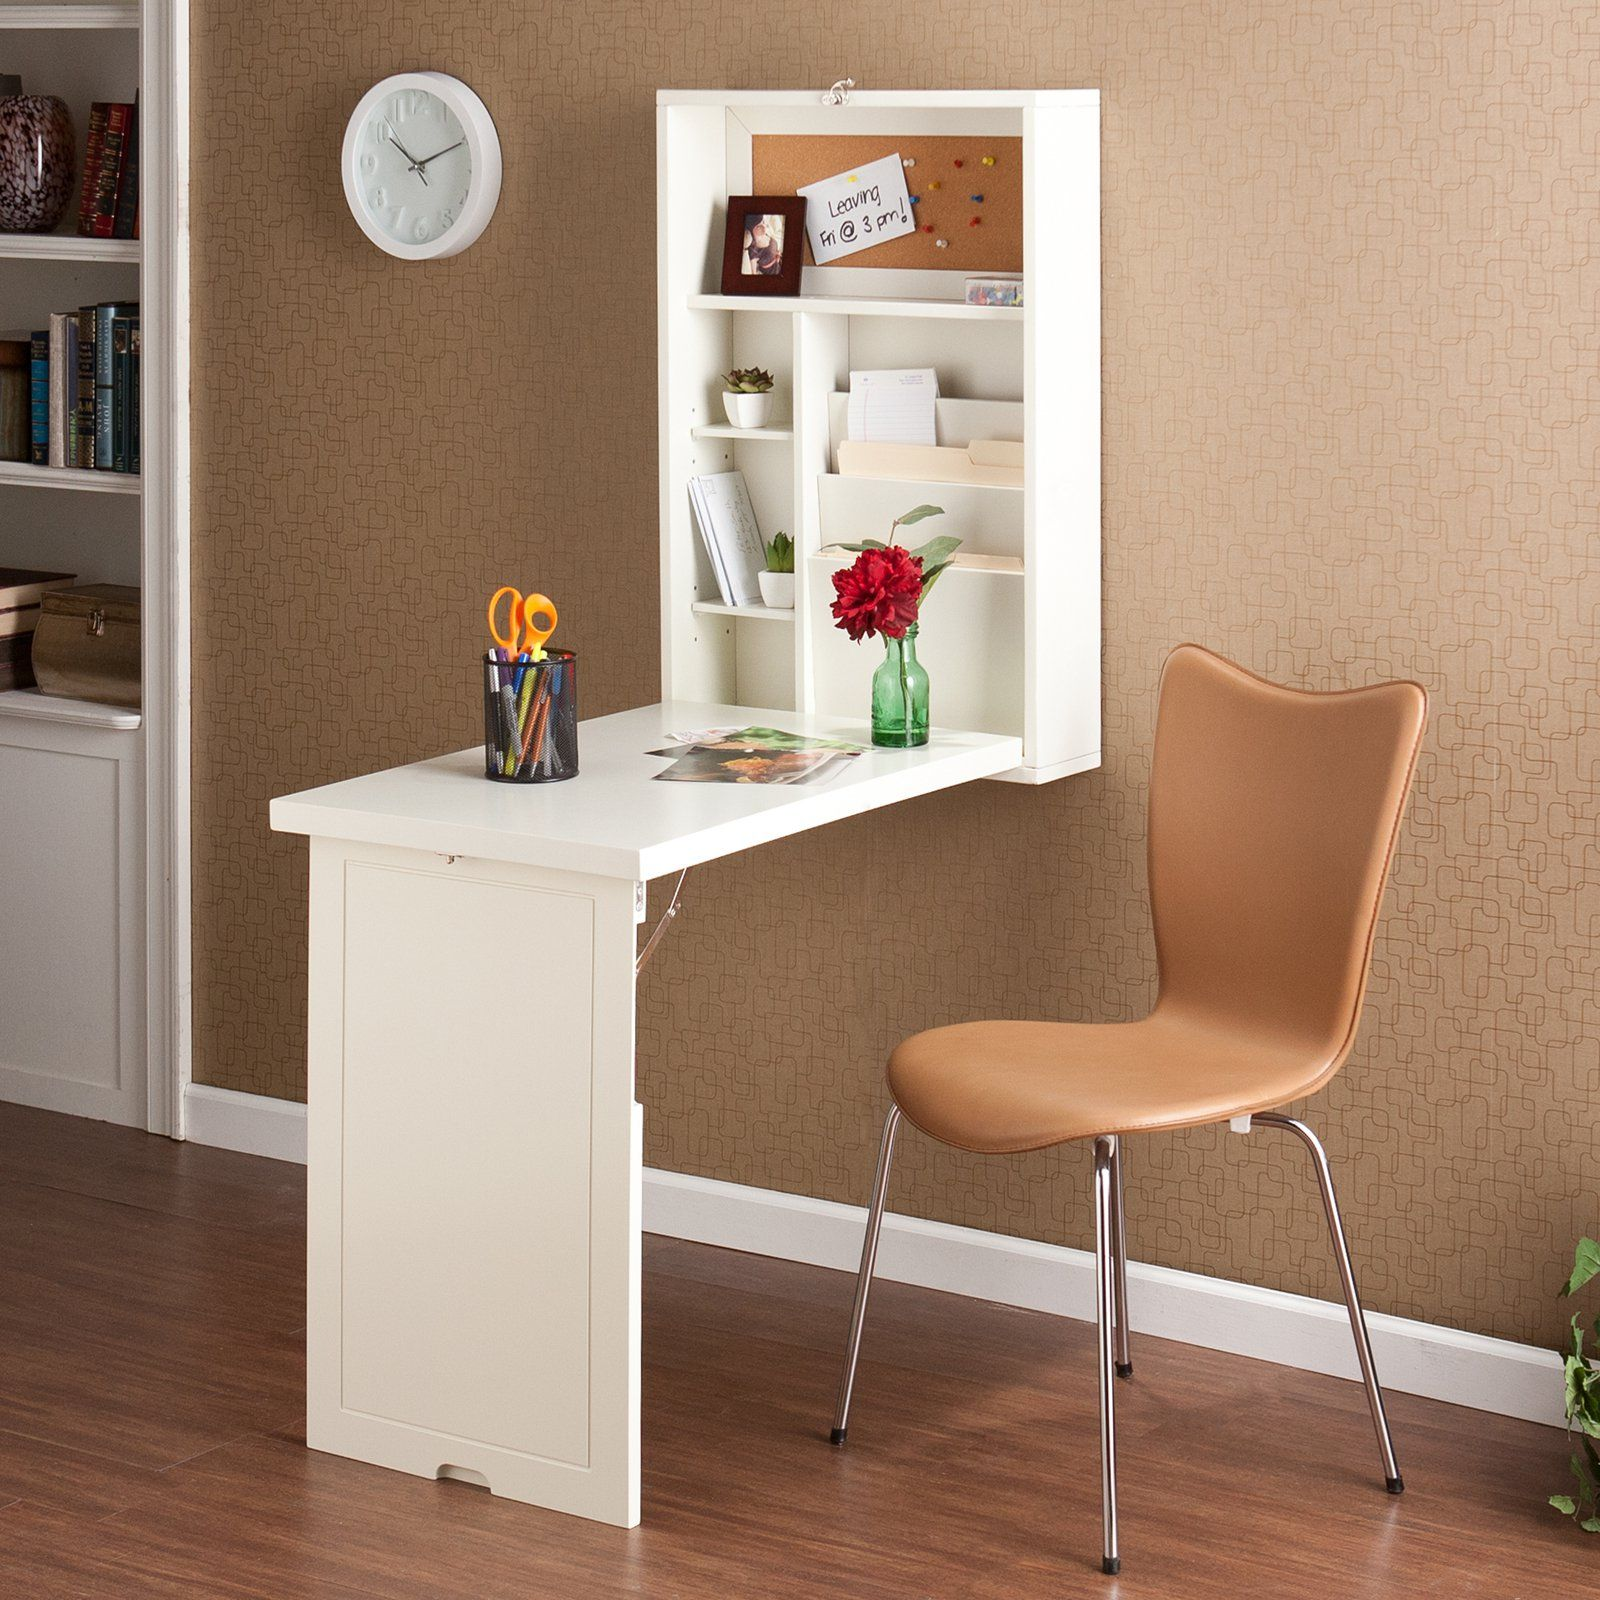 Southern Enterprises Fold Out Convertible Desk White From Hayneedle